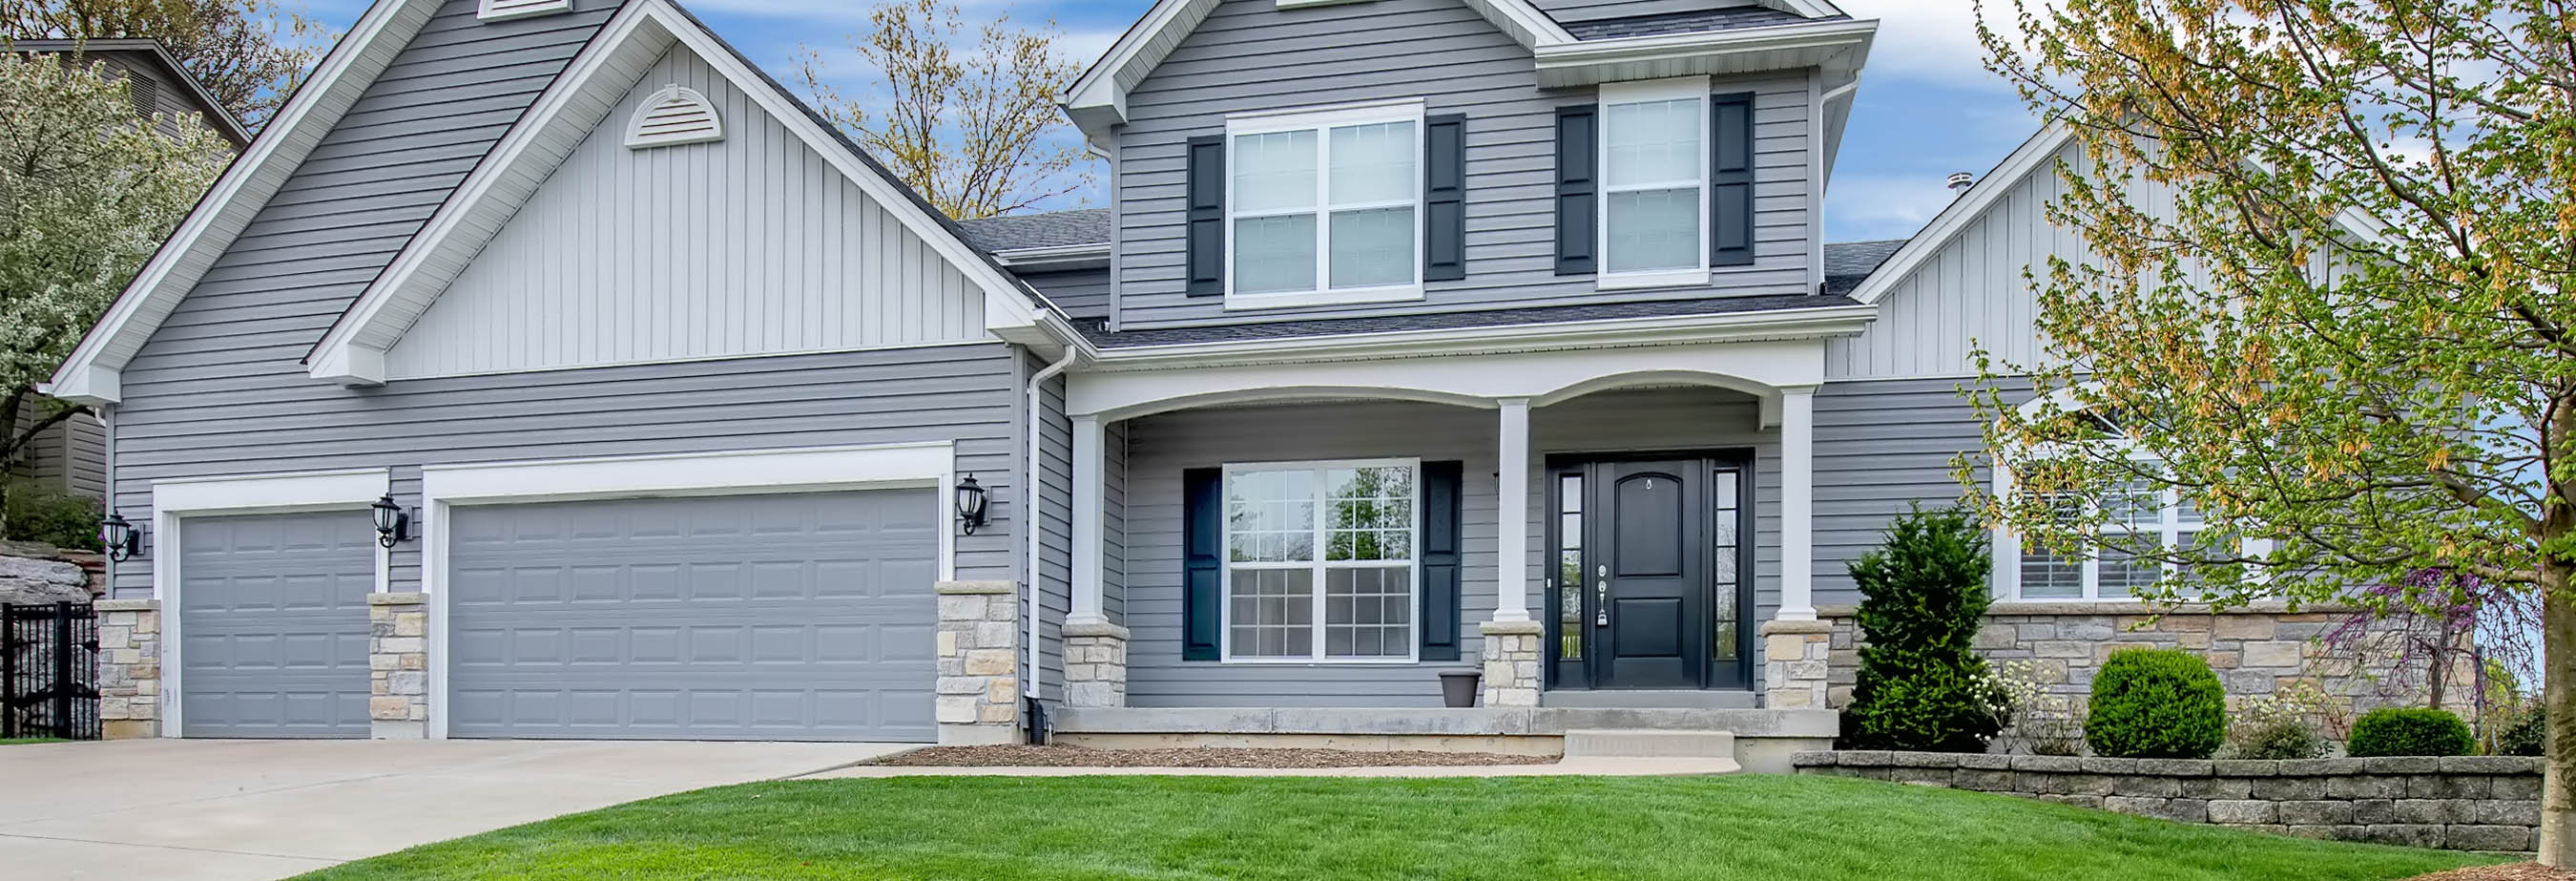 19 Tanglewood Trail | Fantastic Upgrades!